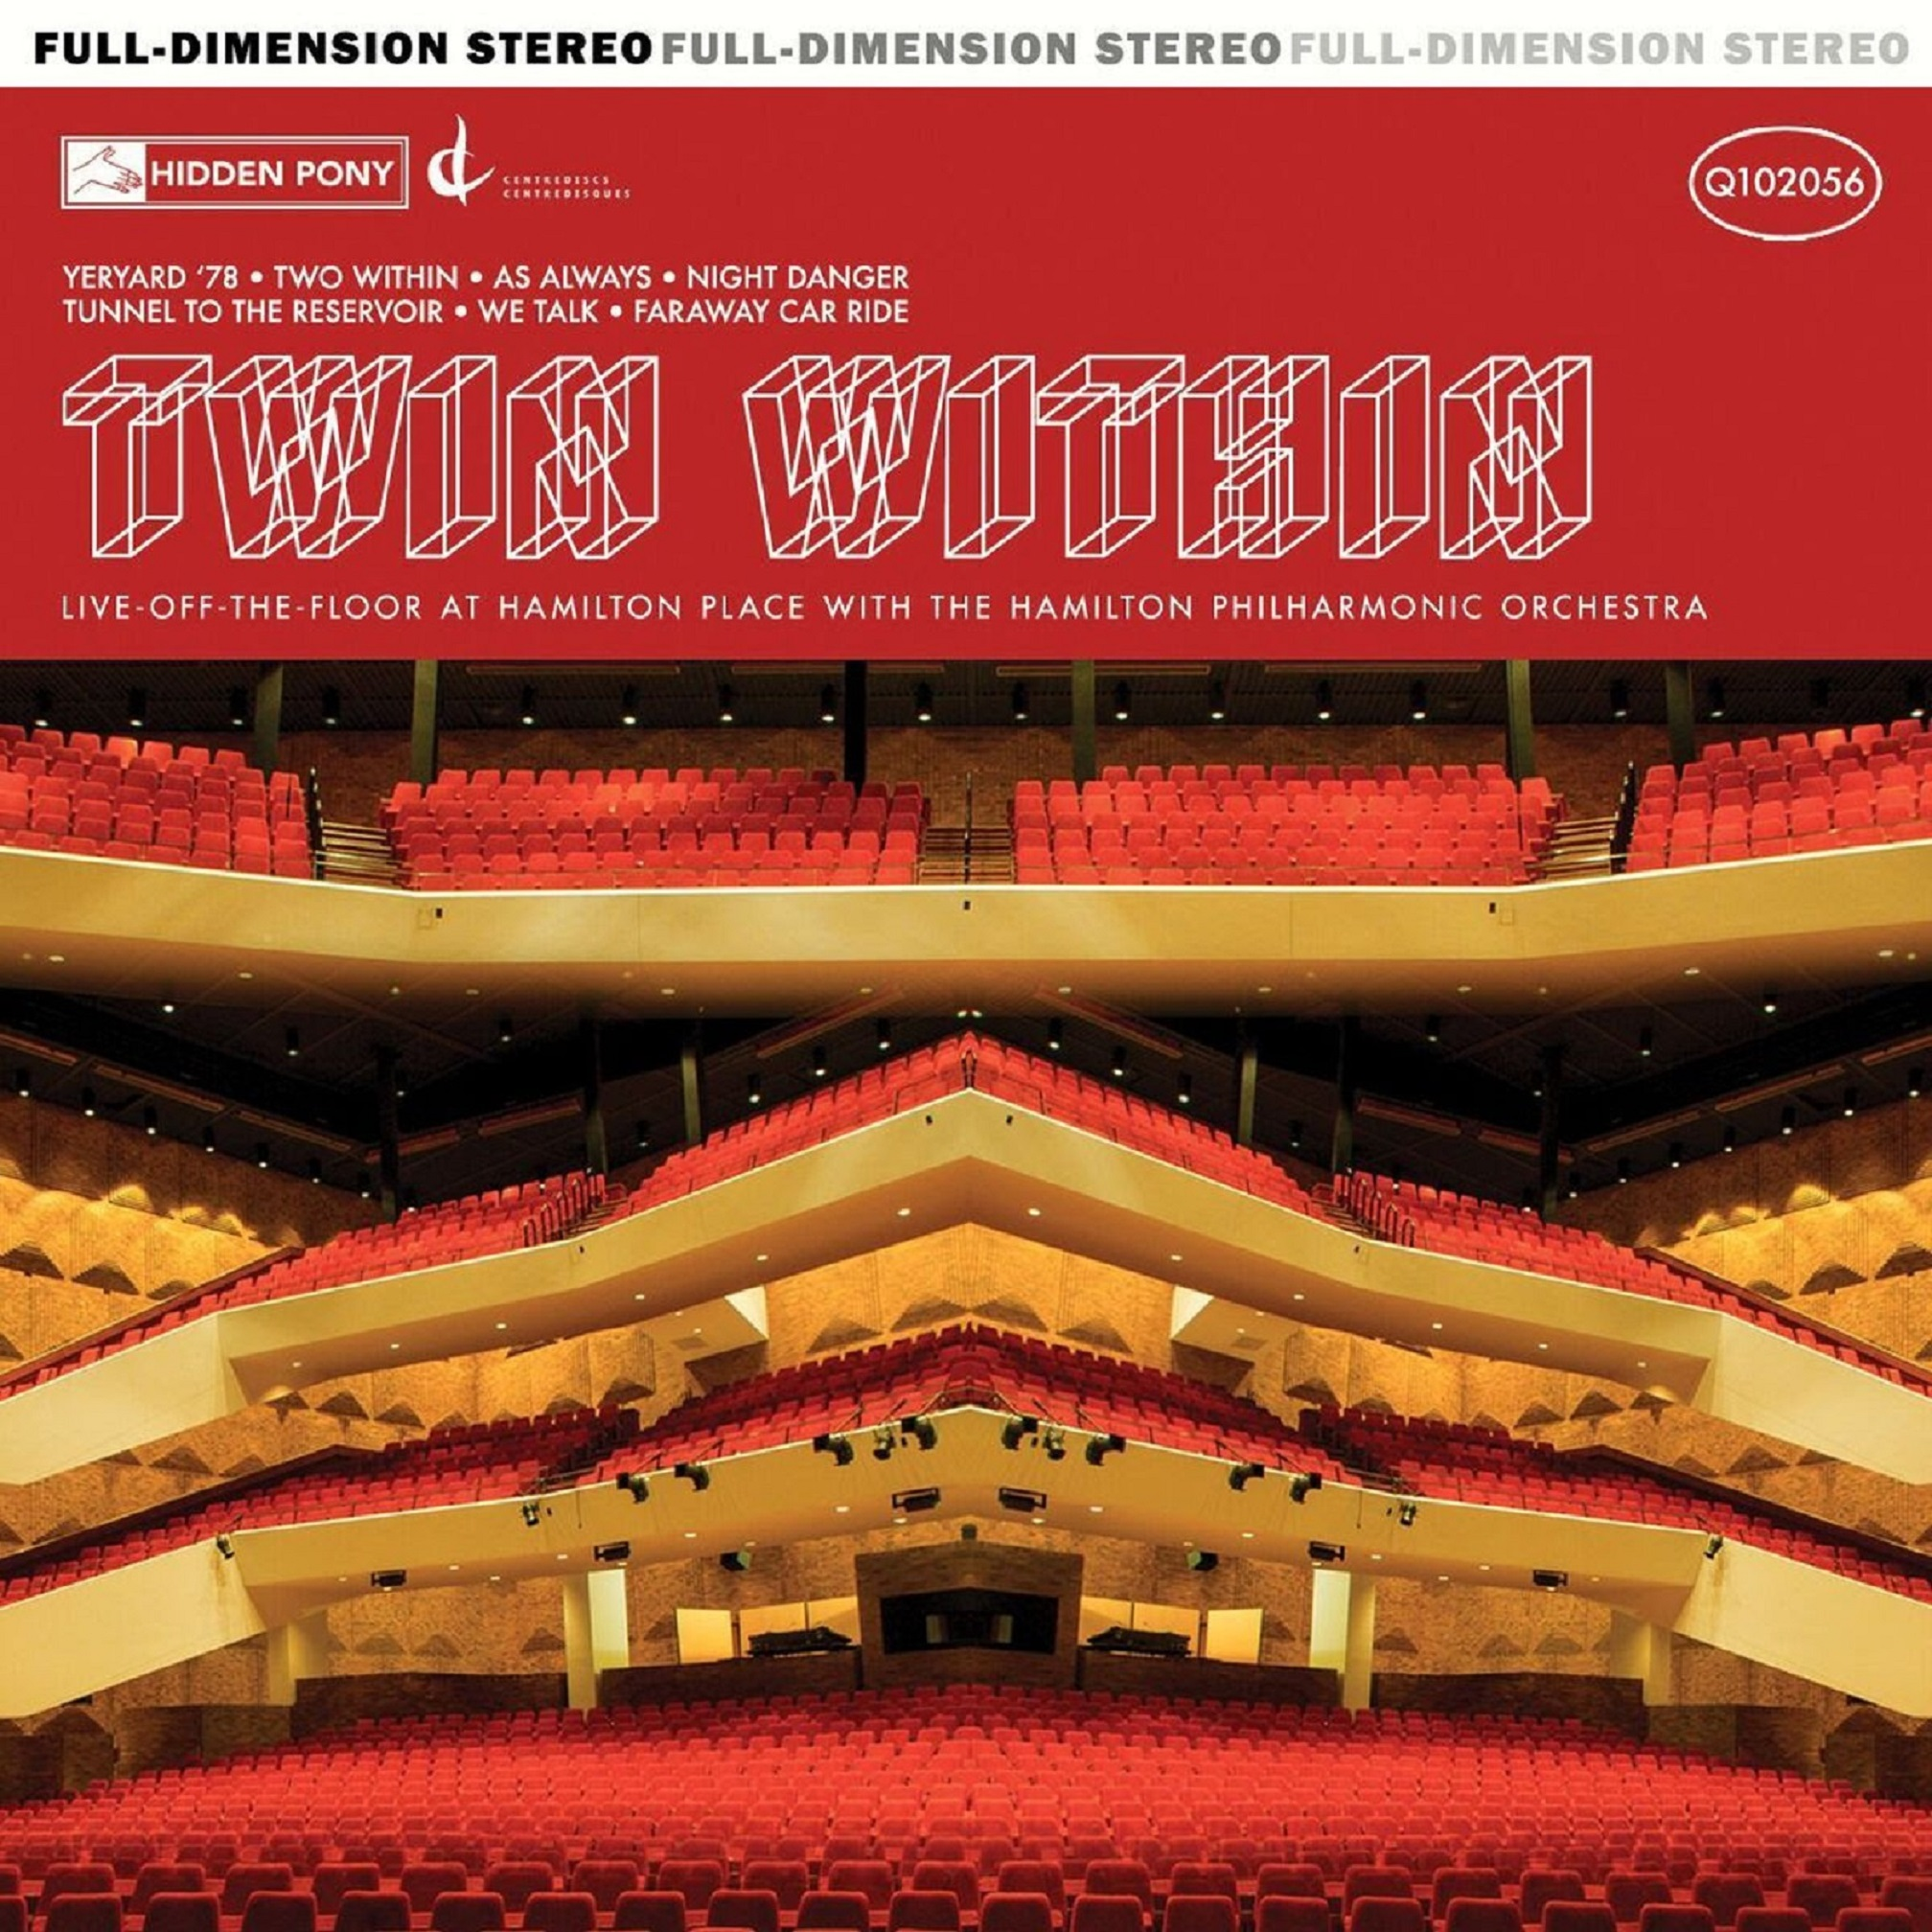 Twin Within Share Live Album w/ Hamilton Philharmonic Orchestra